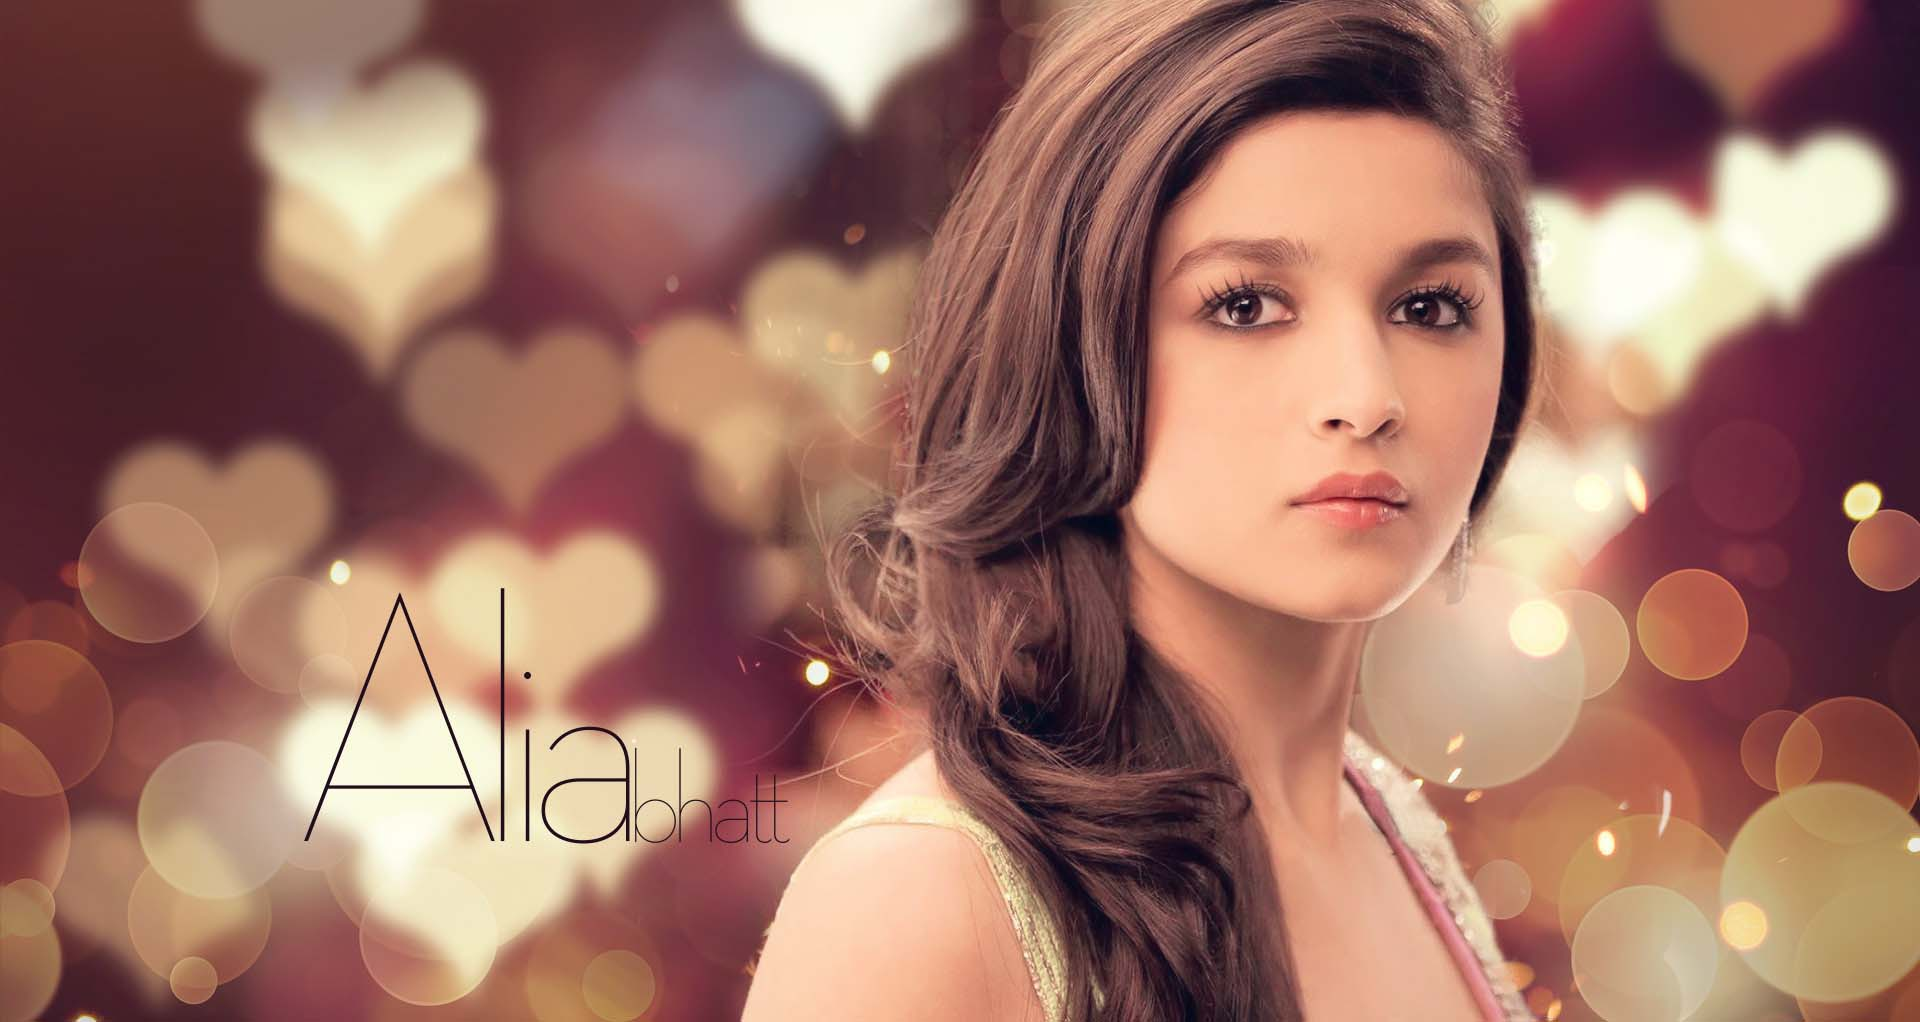 Alia Bhatt hd wallpapers.Desktop wallpapers